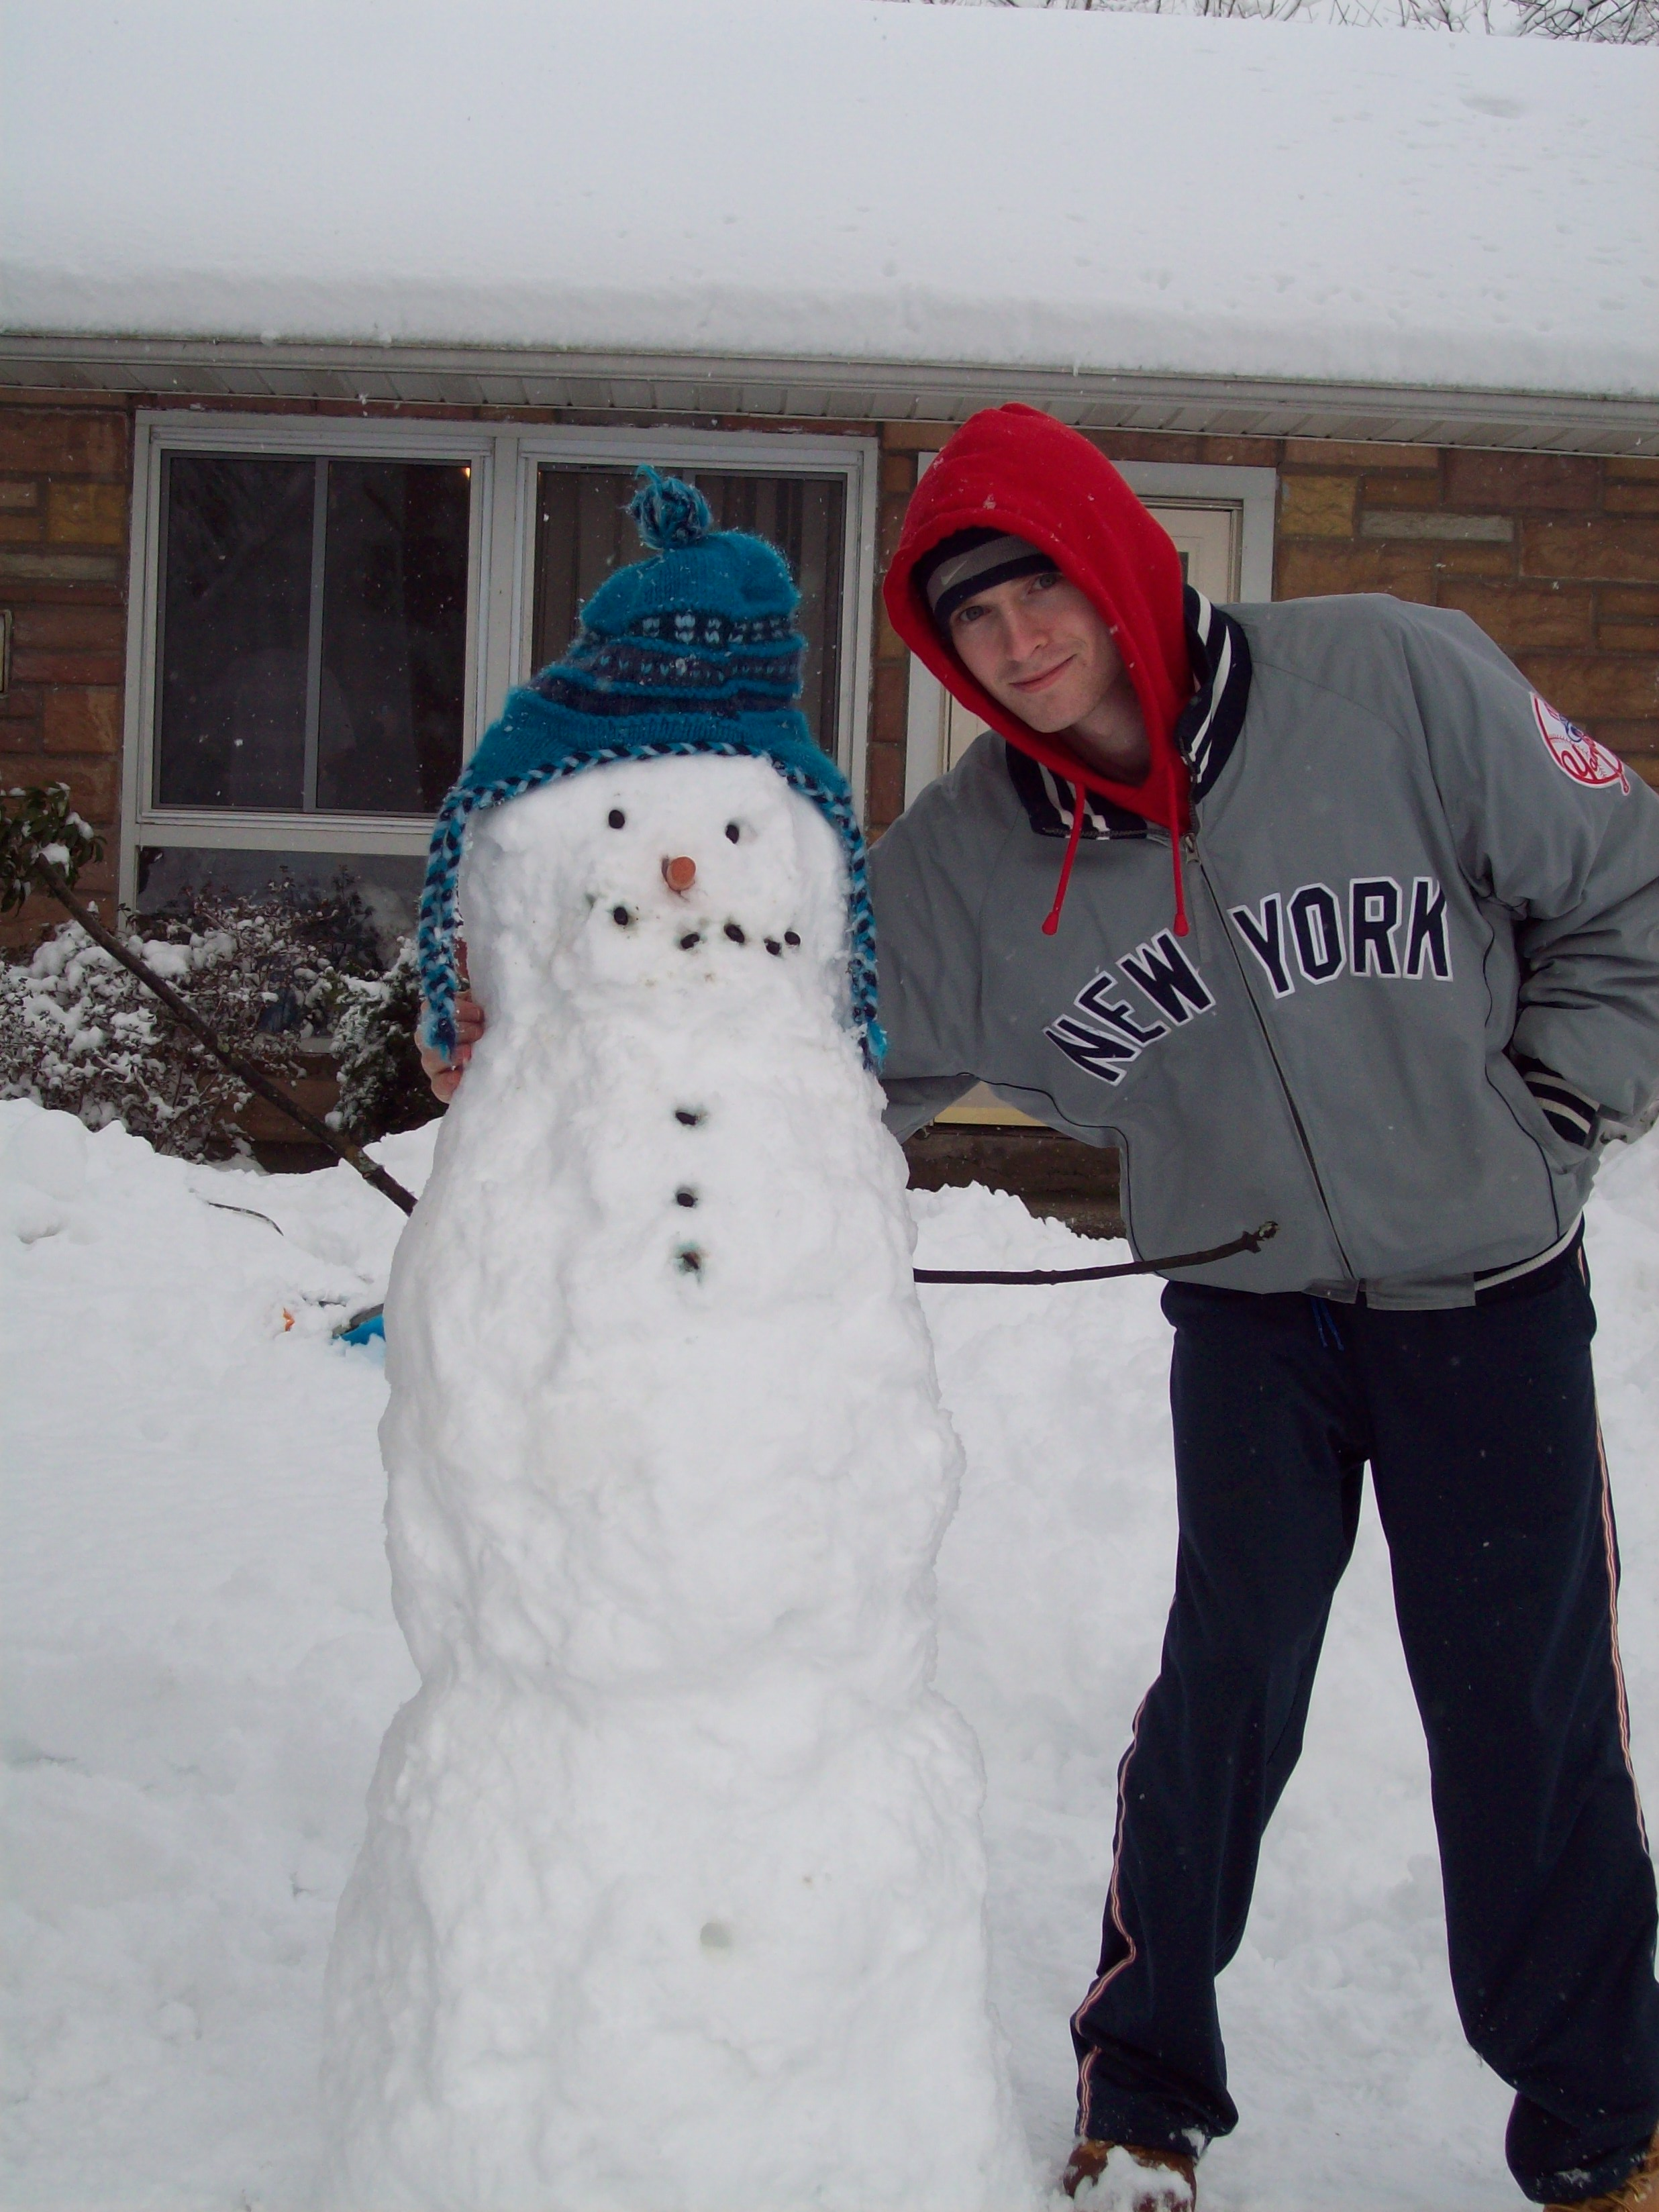 Me and the snowman...I'm wearing the jacket both me and Spike Lee own